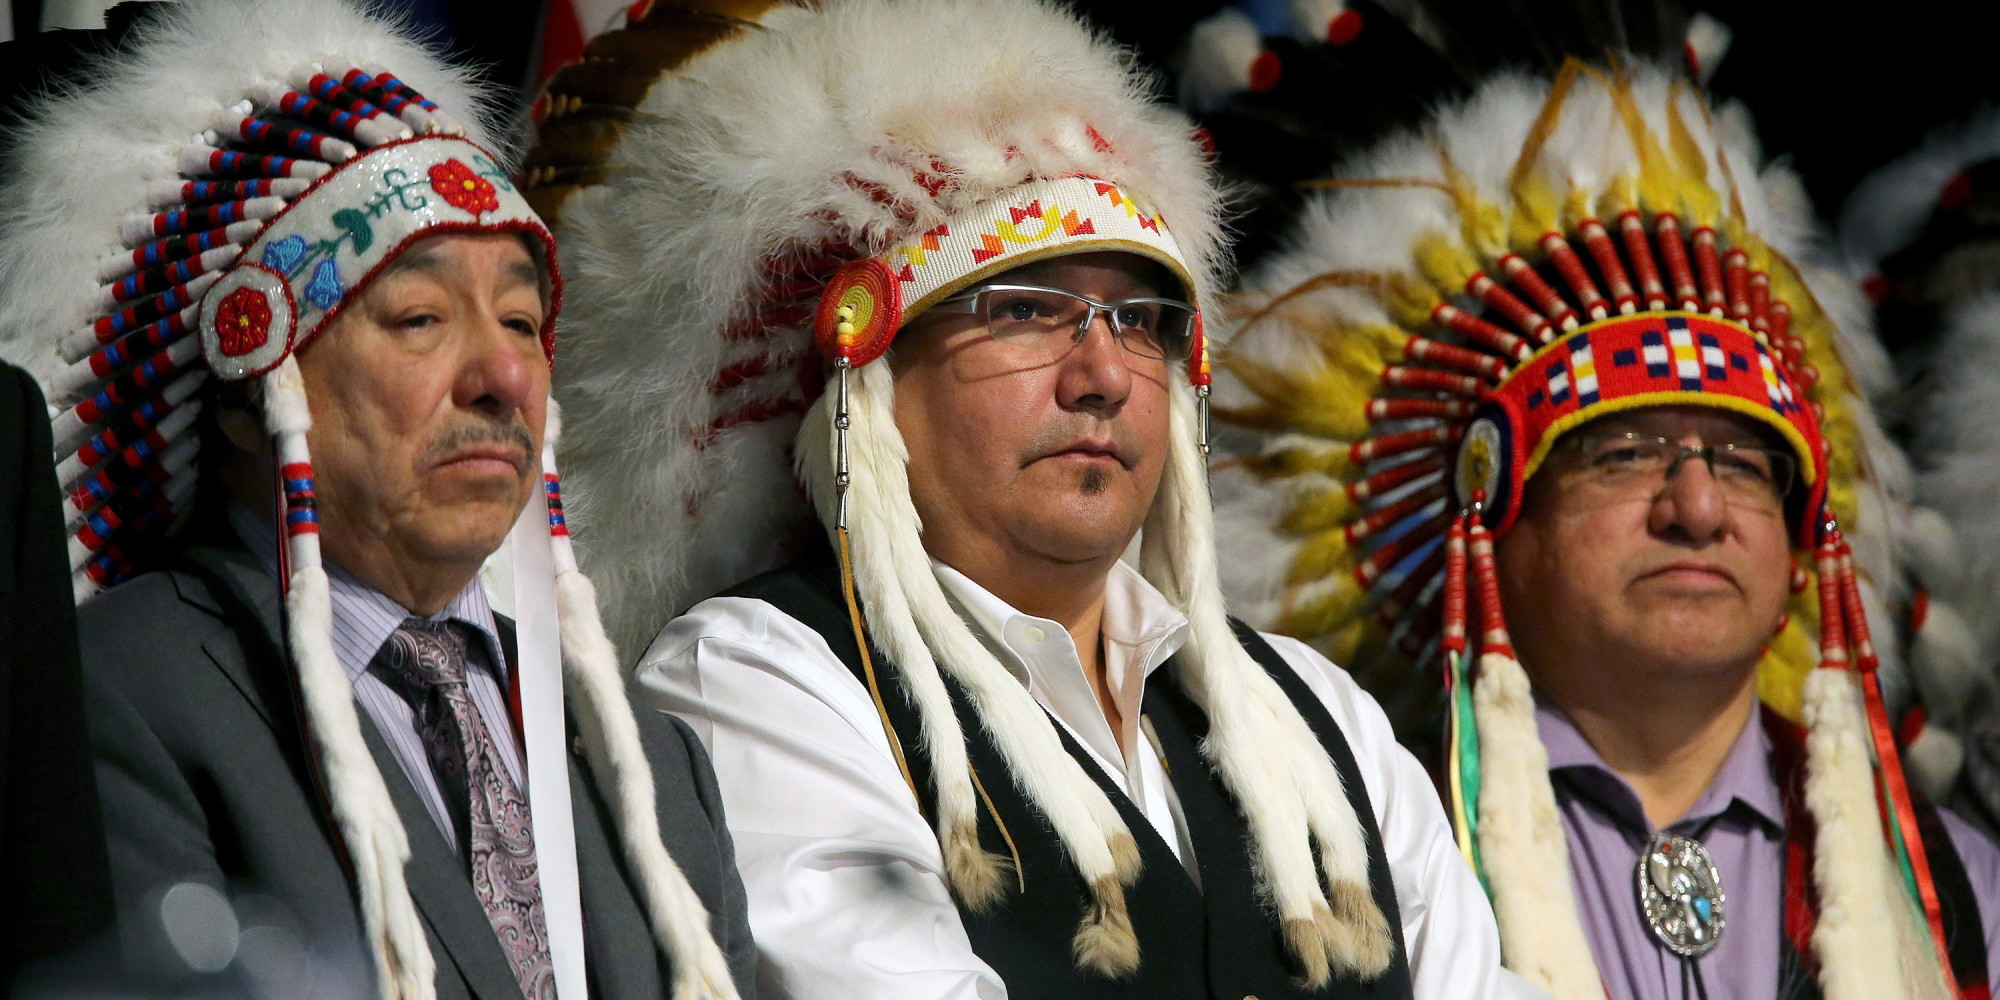 List of First Nations peoples